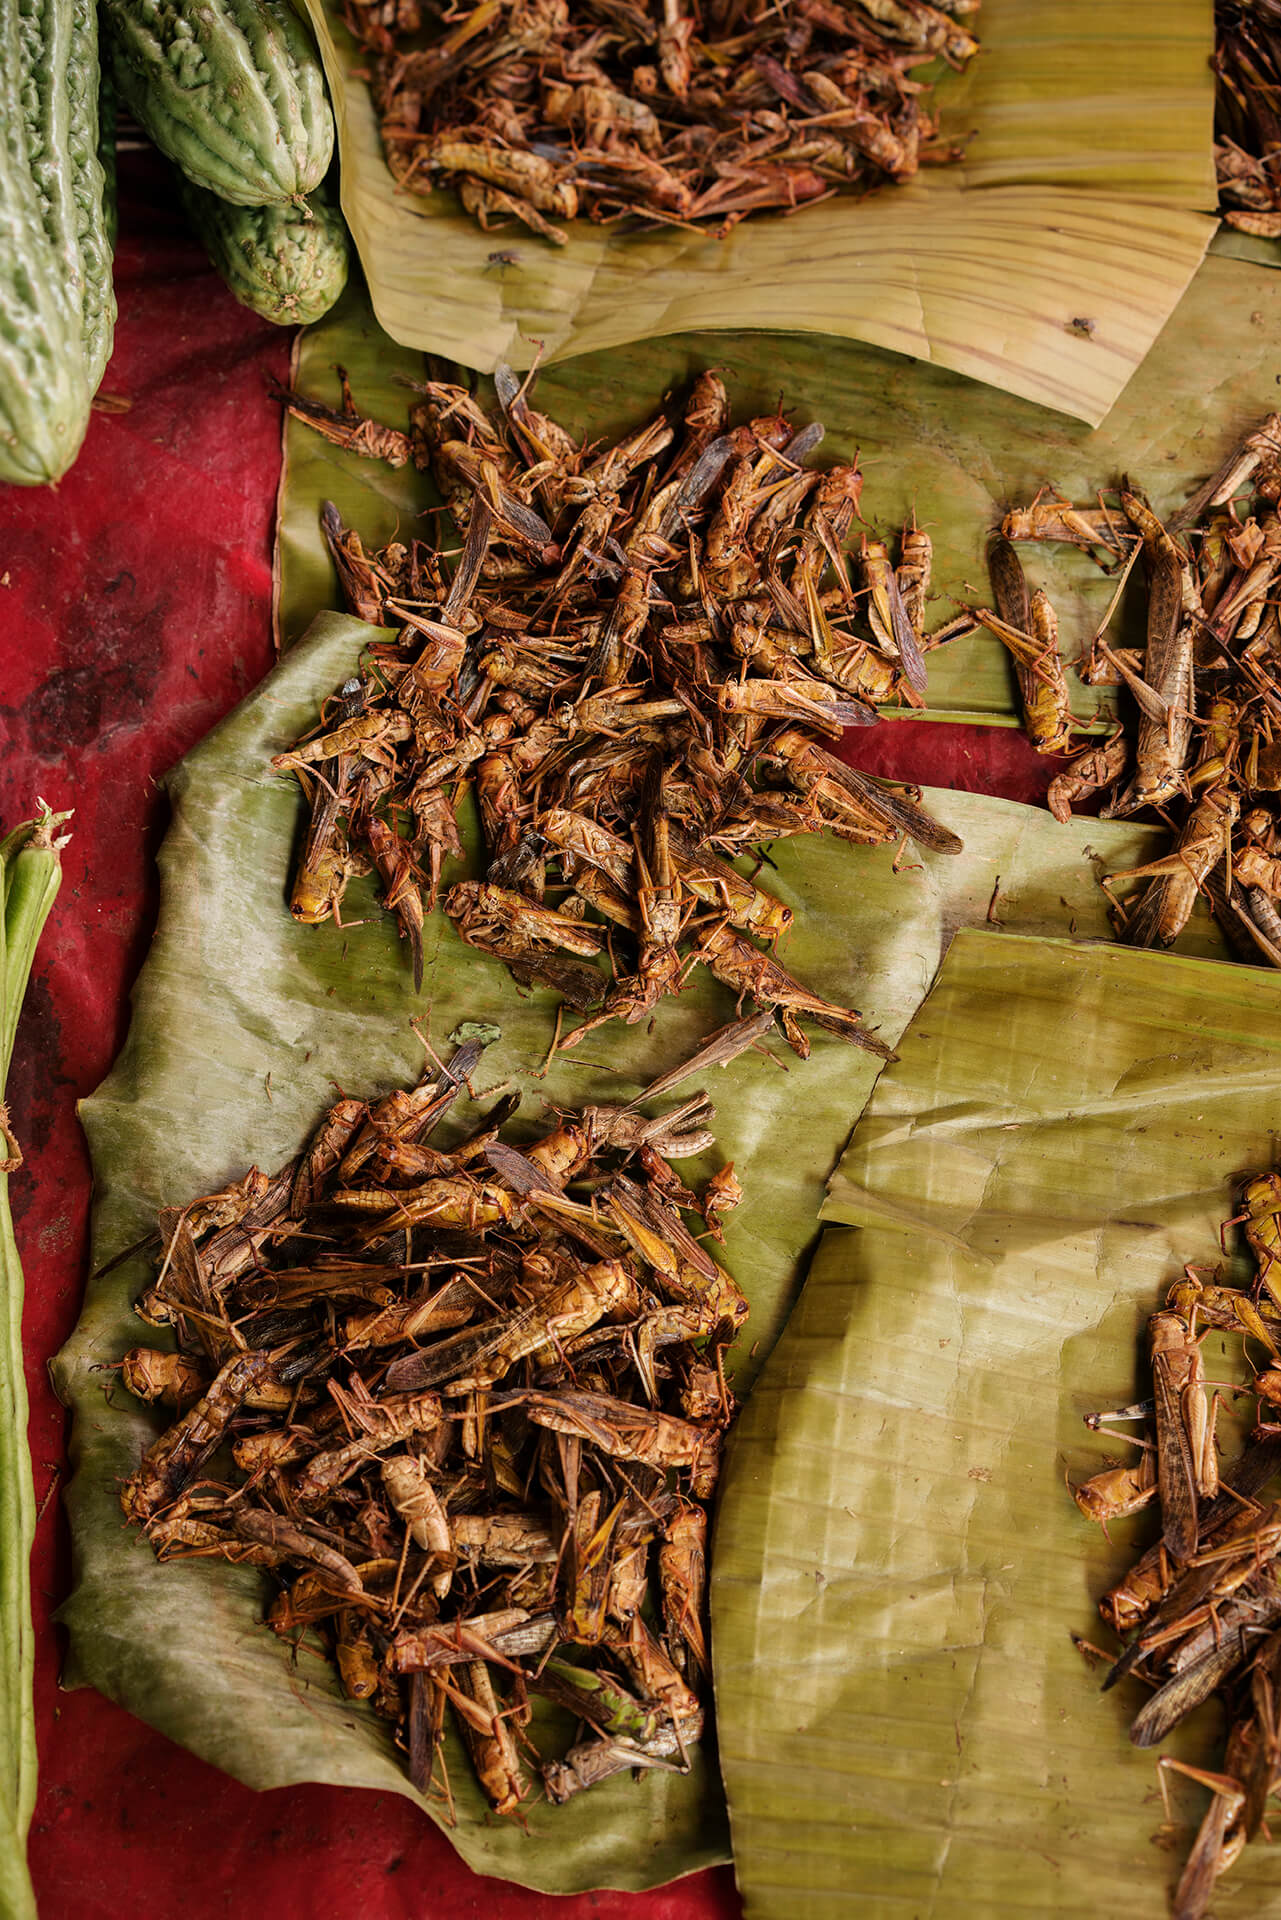 Deep-fried locusts or tapudi are trimmed off their sharp and unwholesome parts before they are deep-fried in oil.